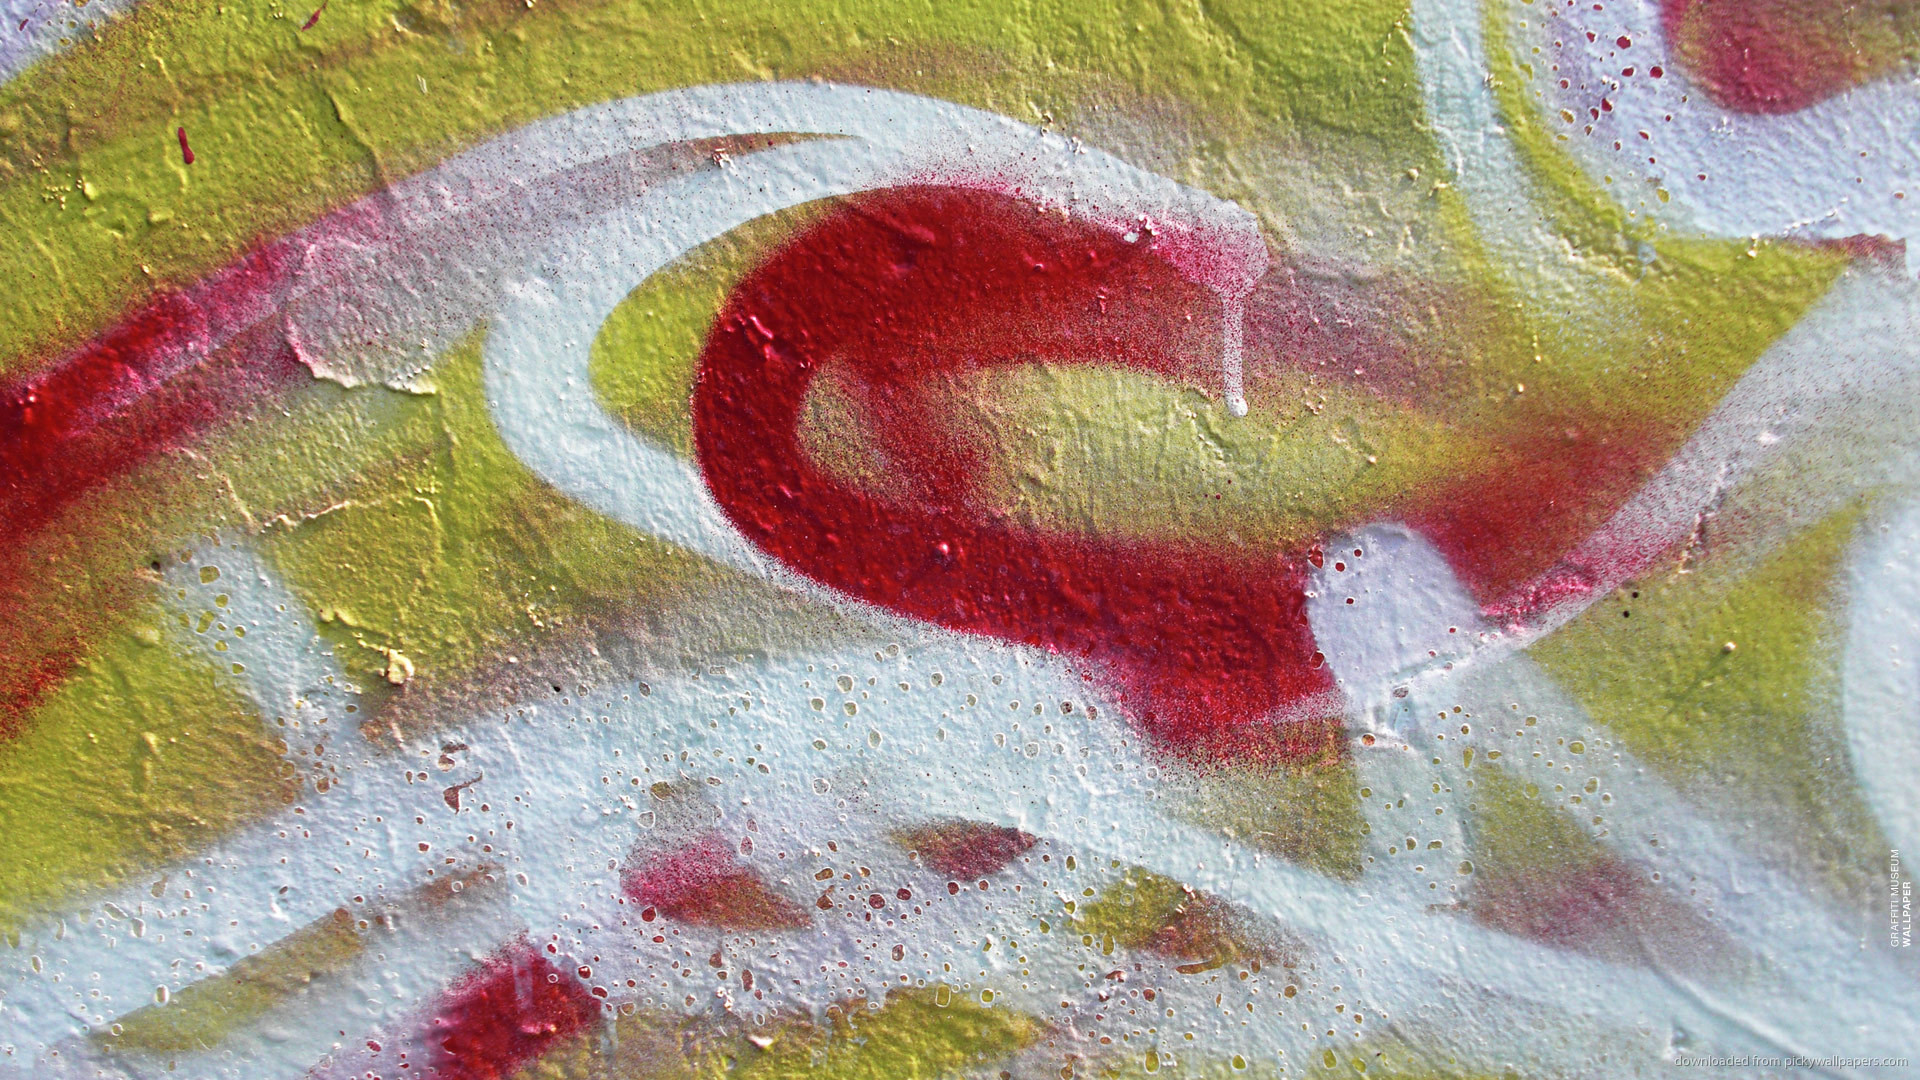 Abstract graffiti picture